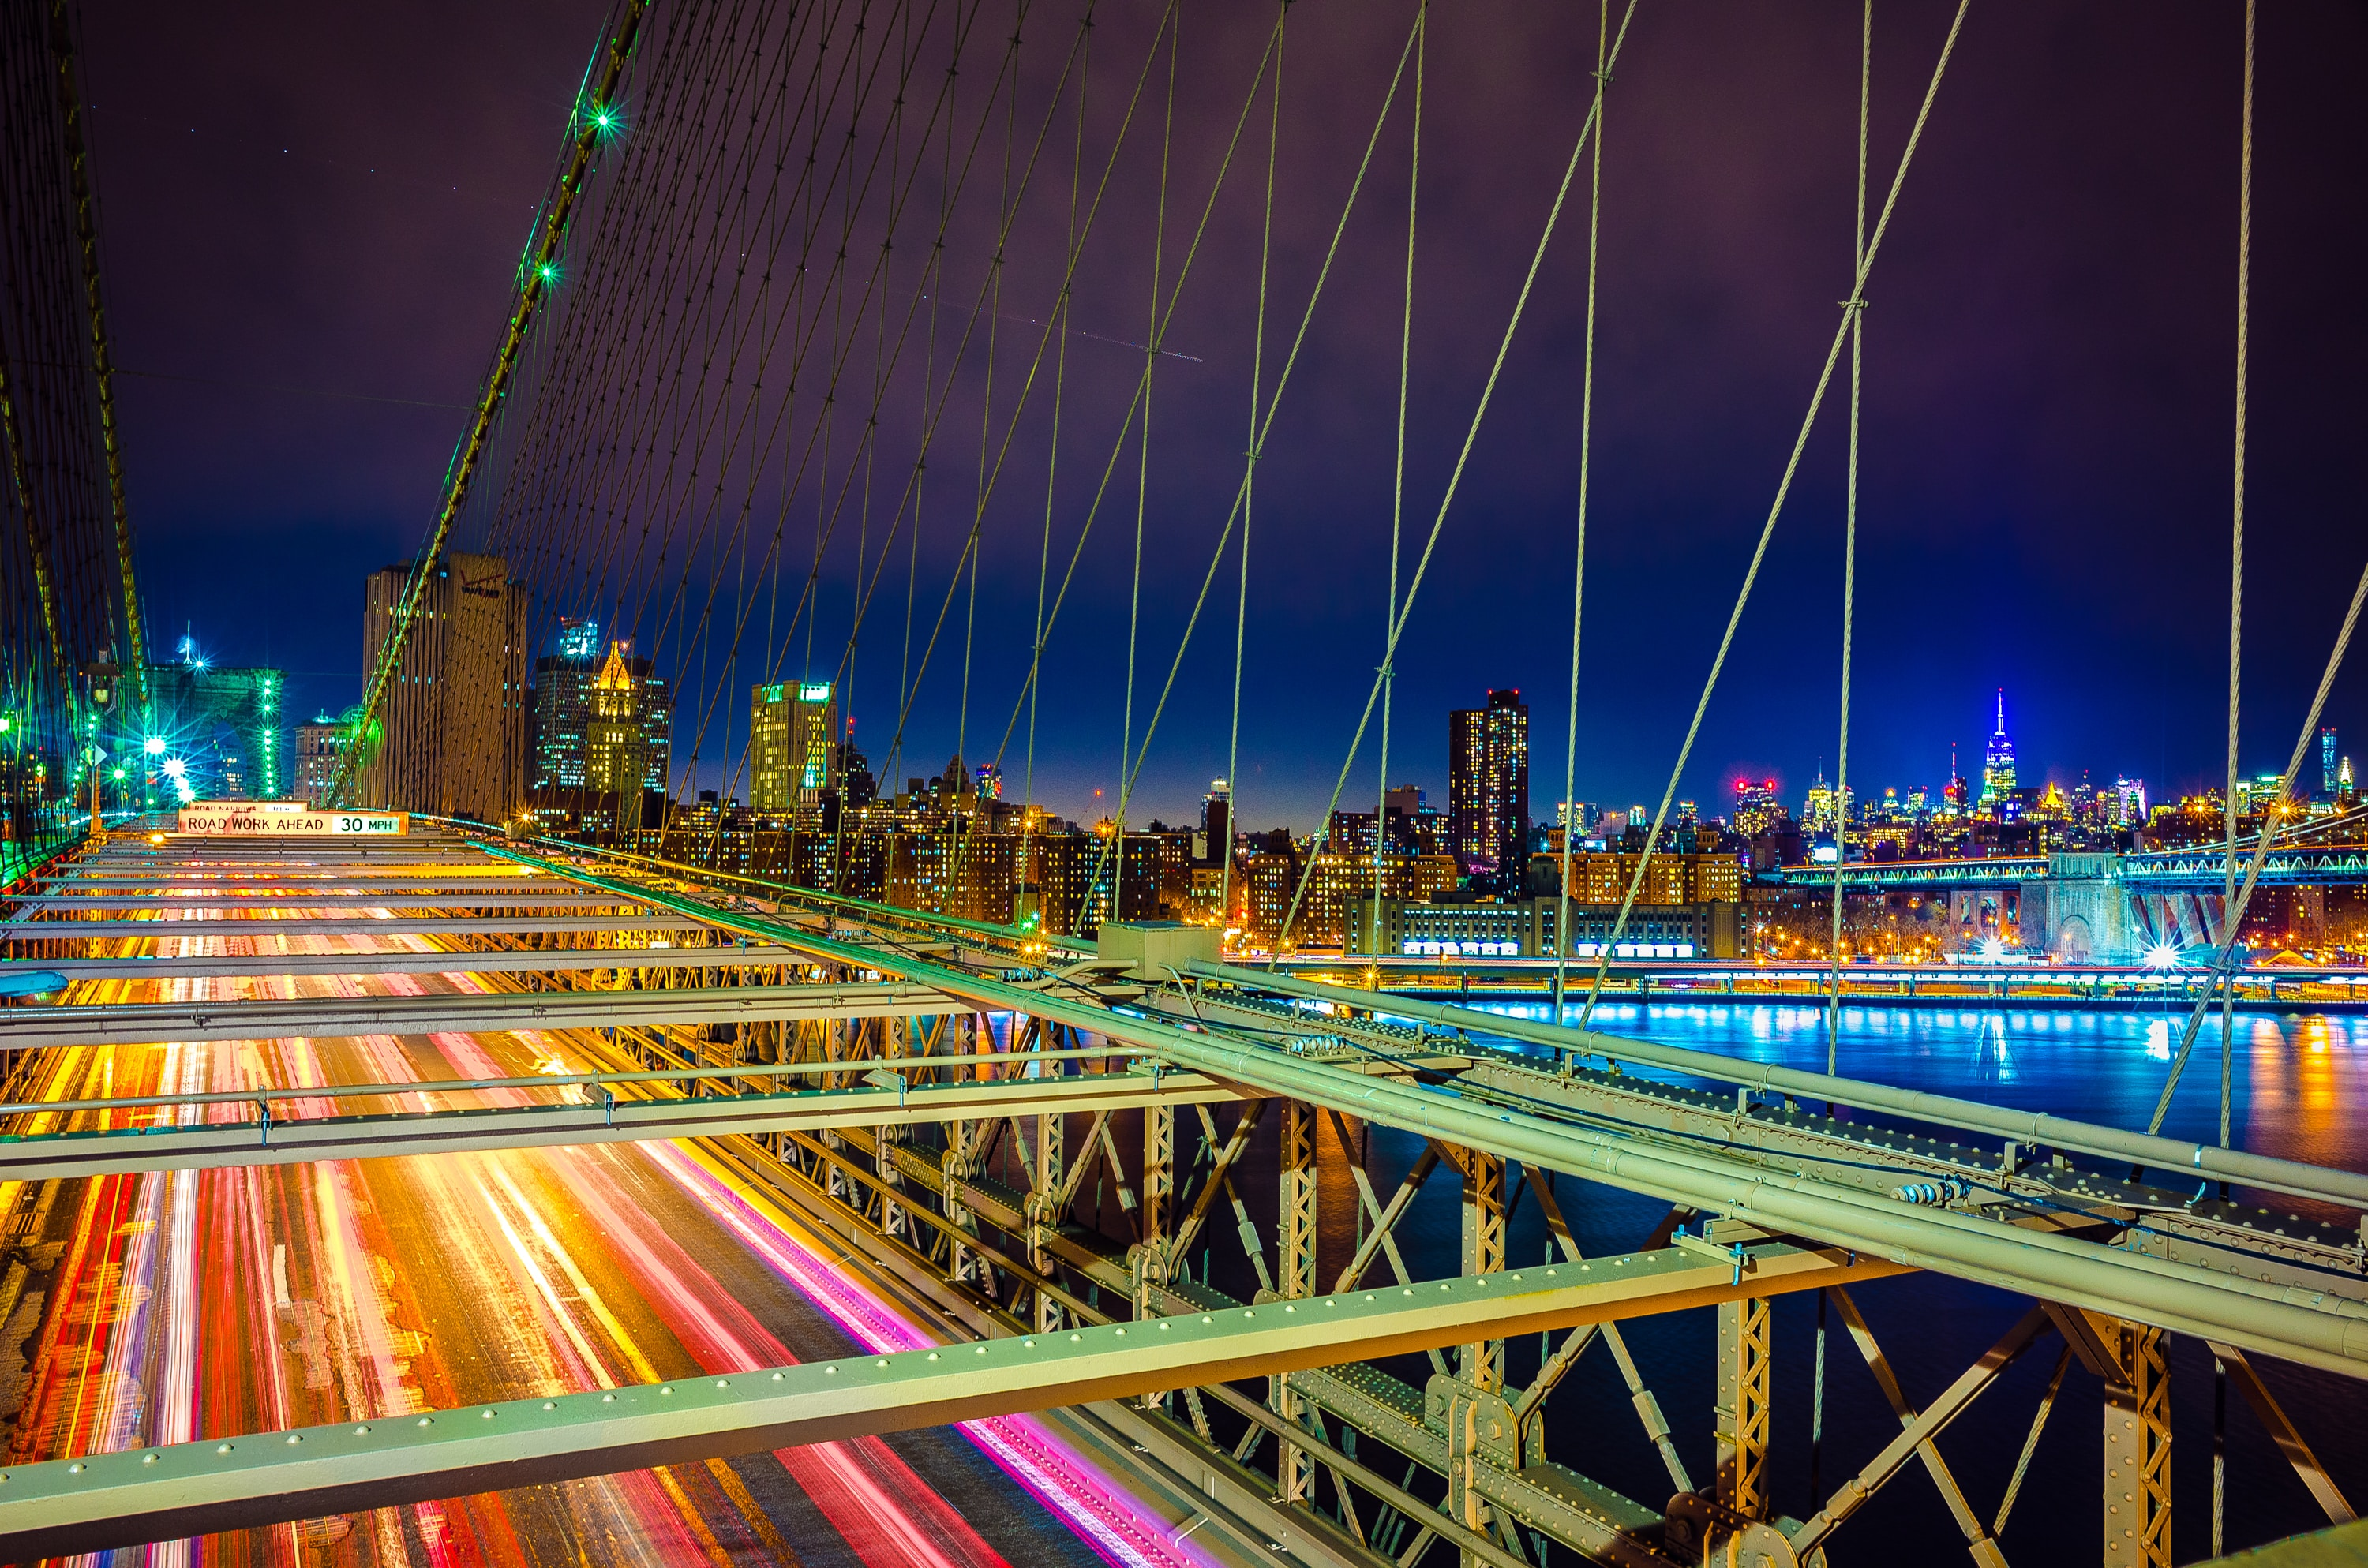 Brooklyn Bridge at night with city lights showing